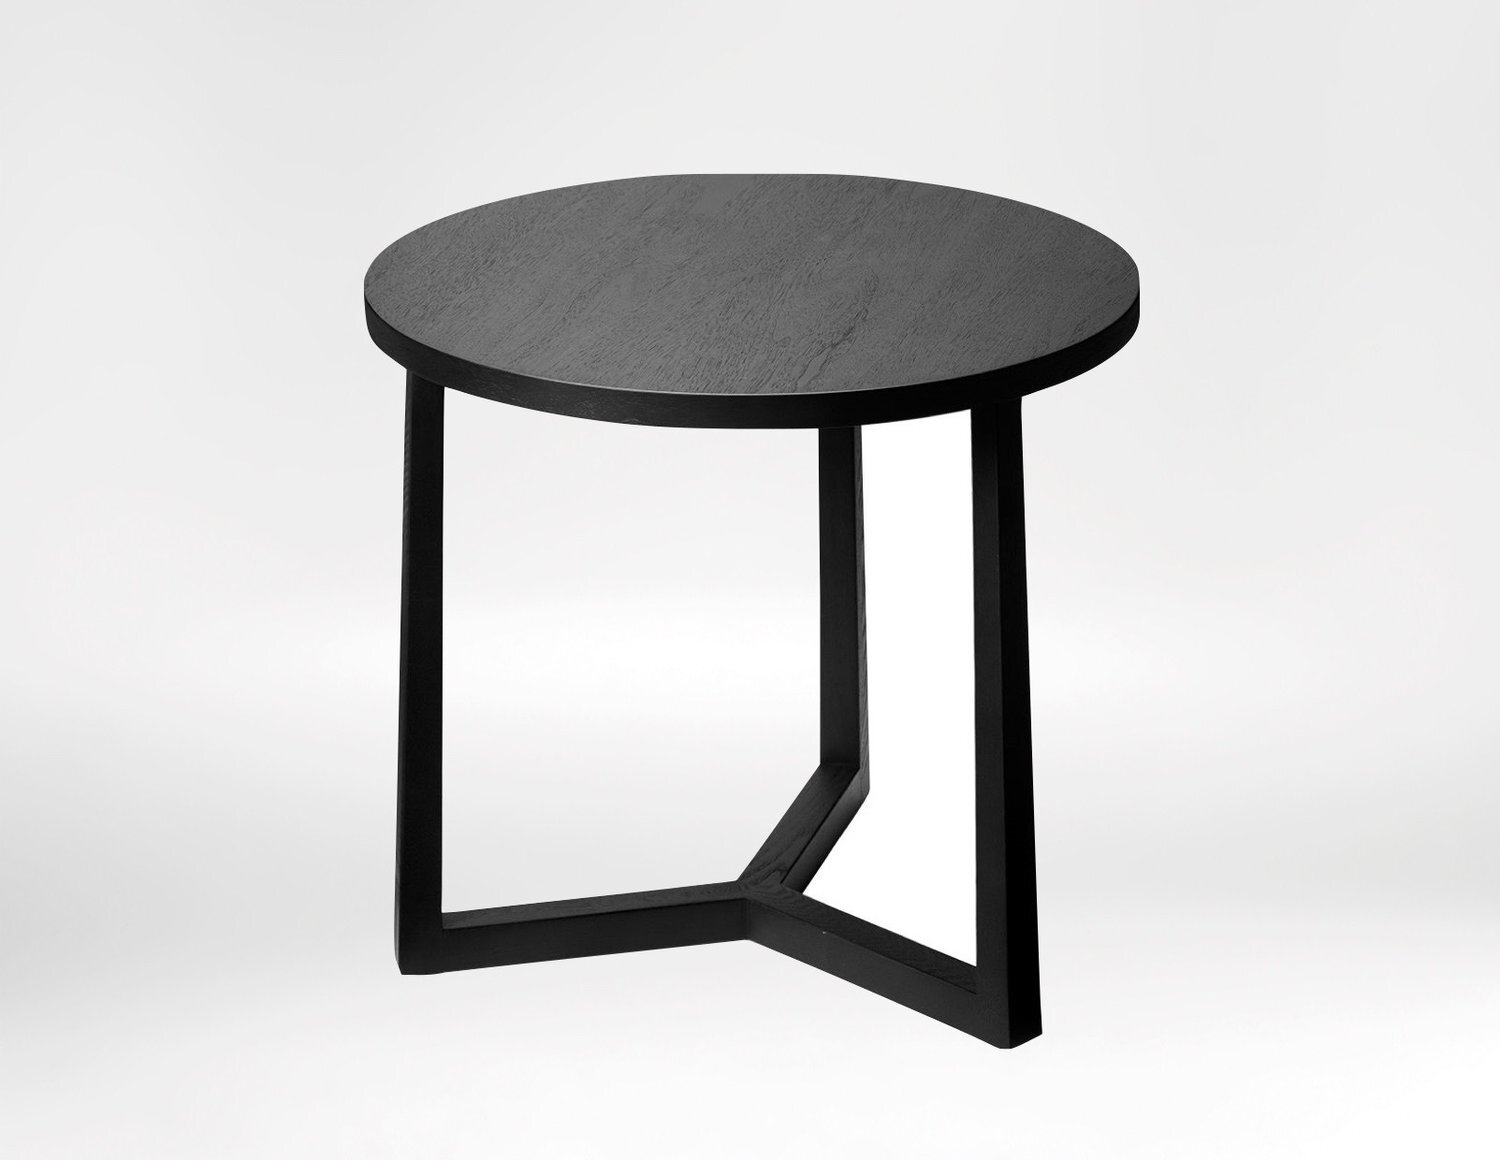 Teri side table - Available in two sizes and can be stacked for compact spaces